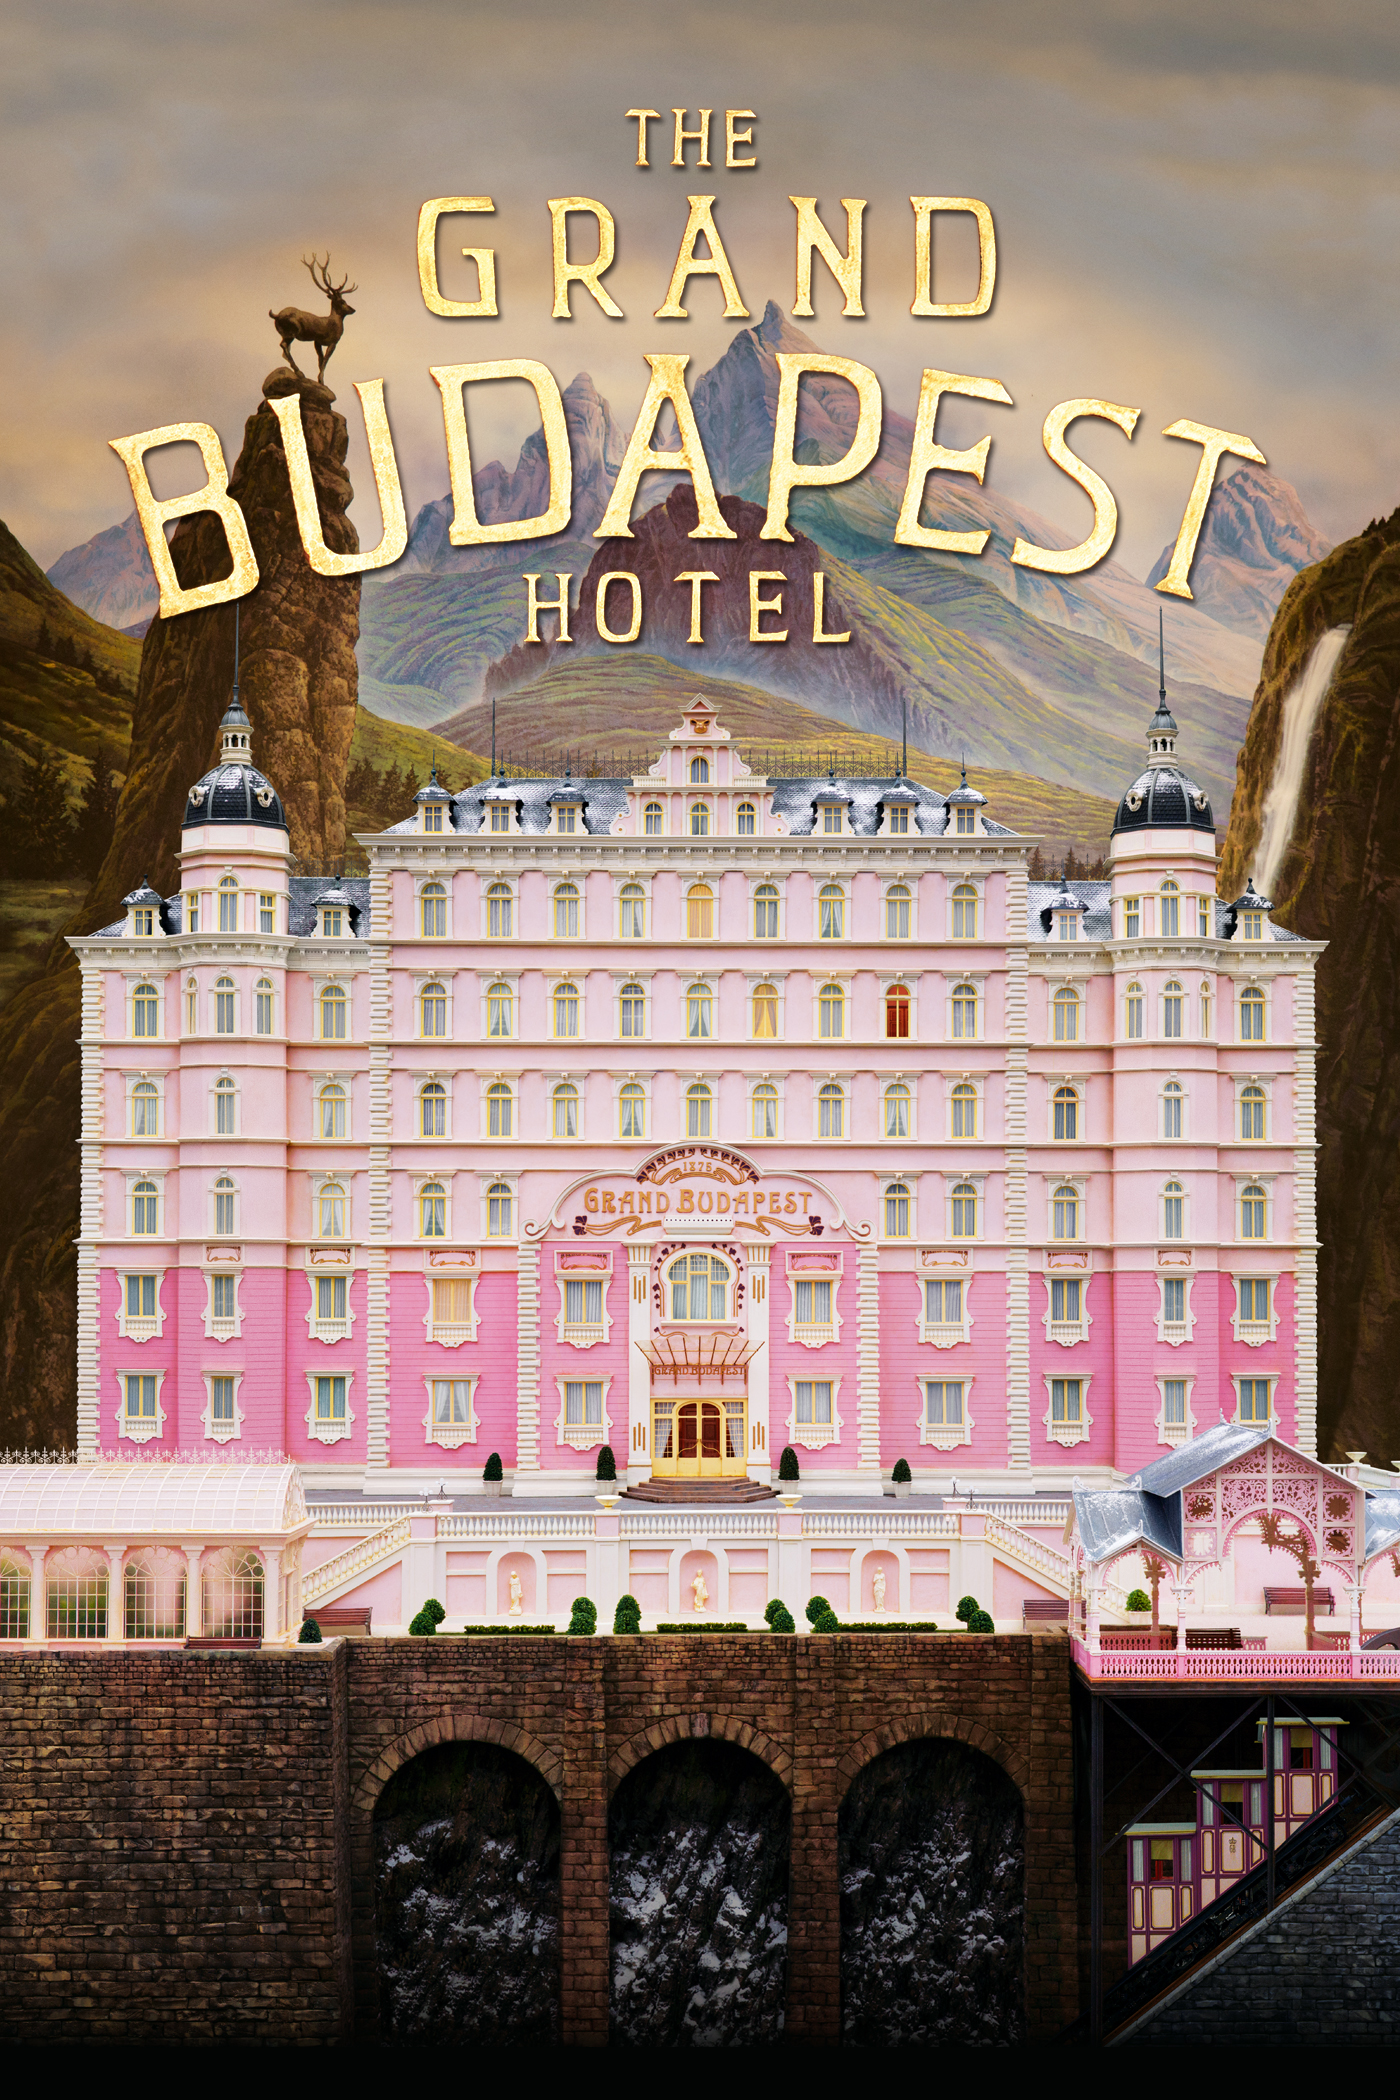 Itunes movies the grand budapest hotel for Hotel budapest